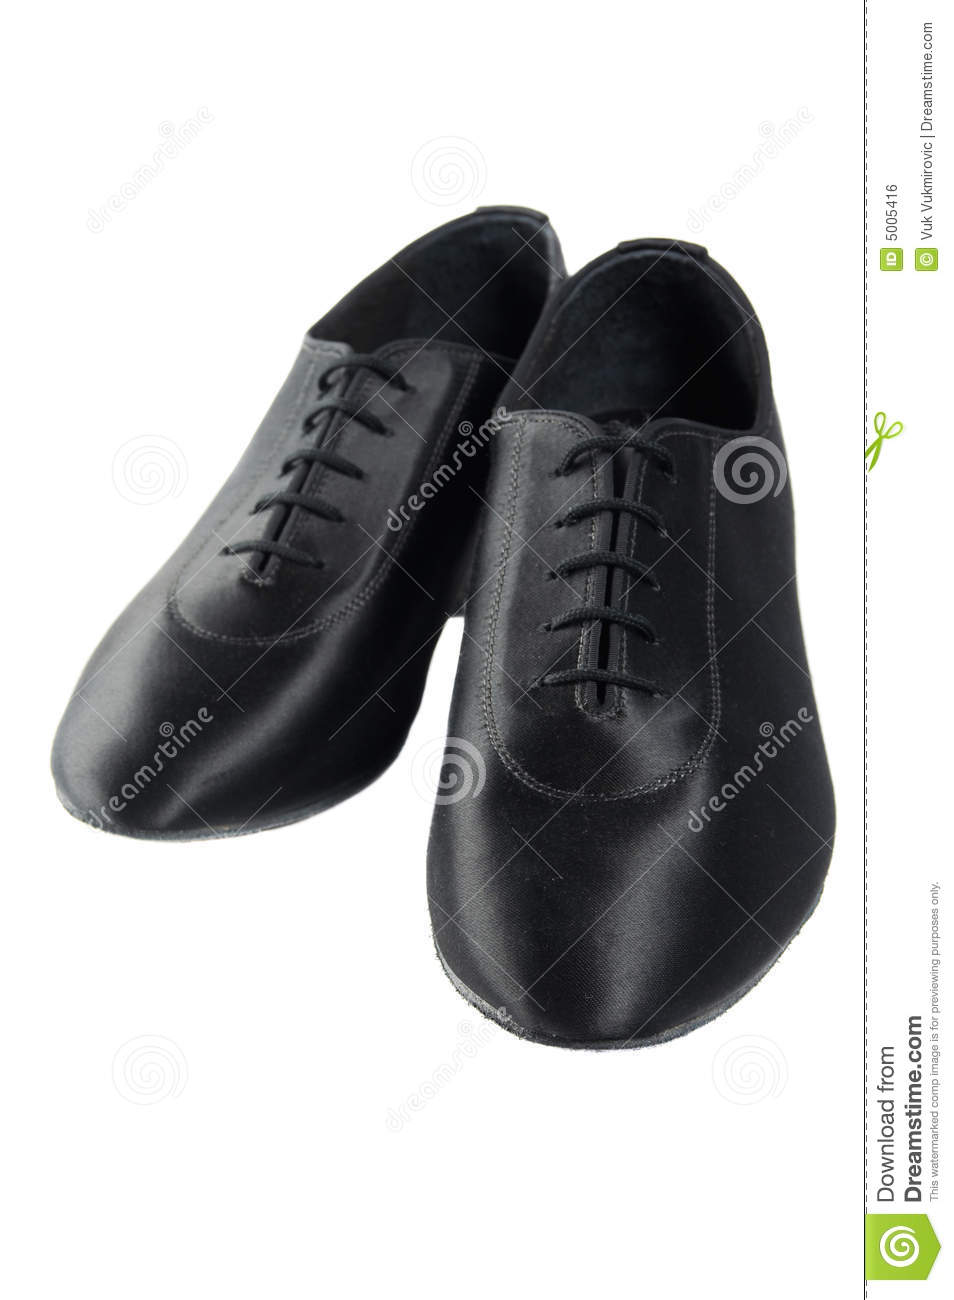 40c3a57eb Men dance shoes stock photo. Image of black, dance, paso - 5005416